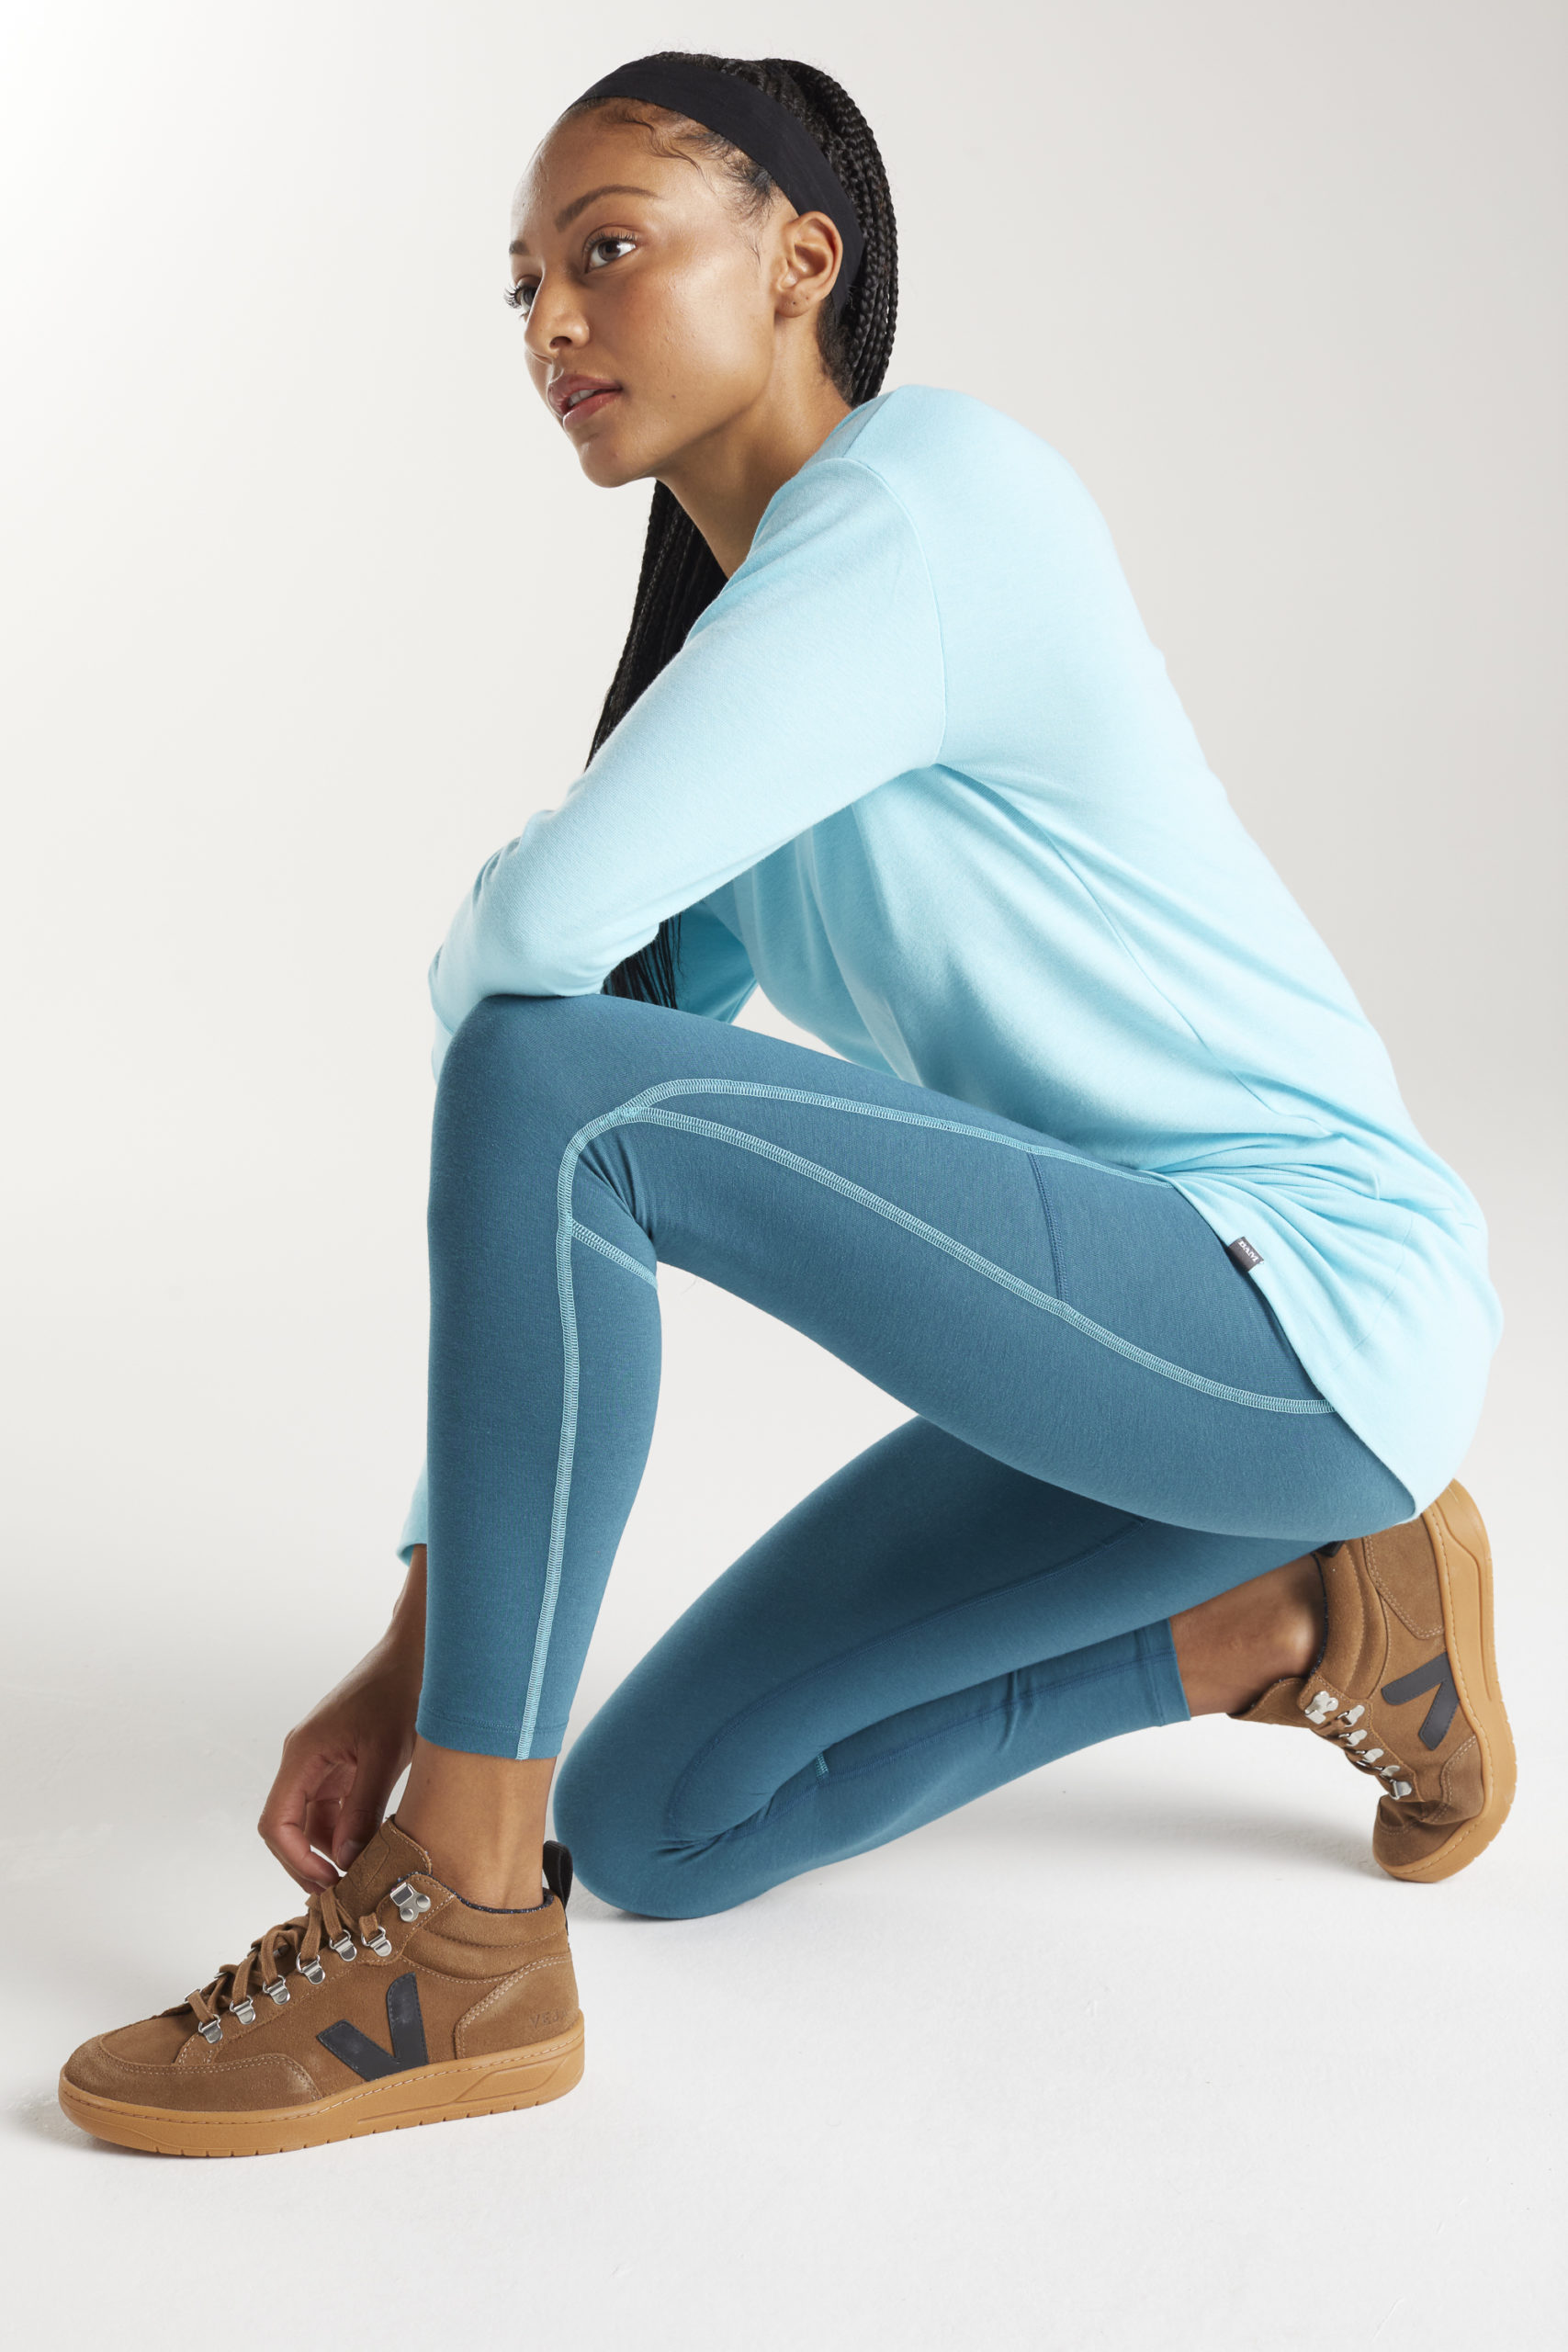 BAM Bamboo Clothing Enduro Leggings with Side Pocket